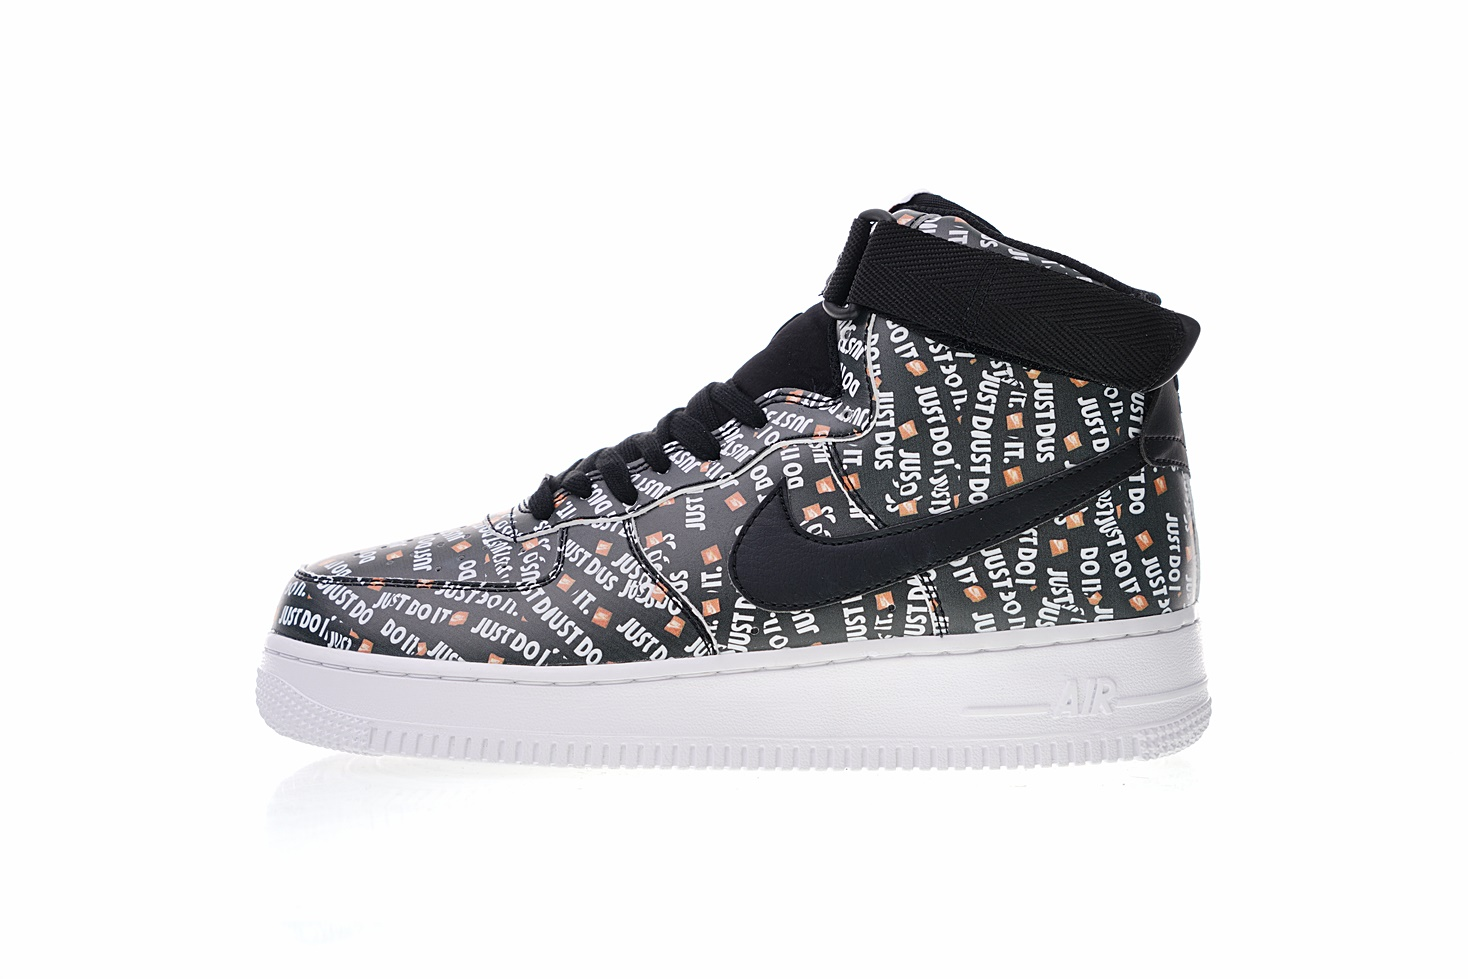 Air Force 1 High 'Just Do It' AR7719 001